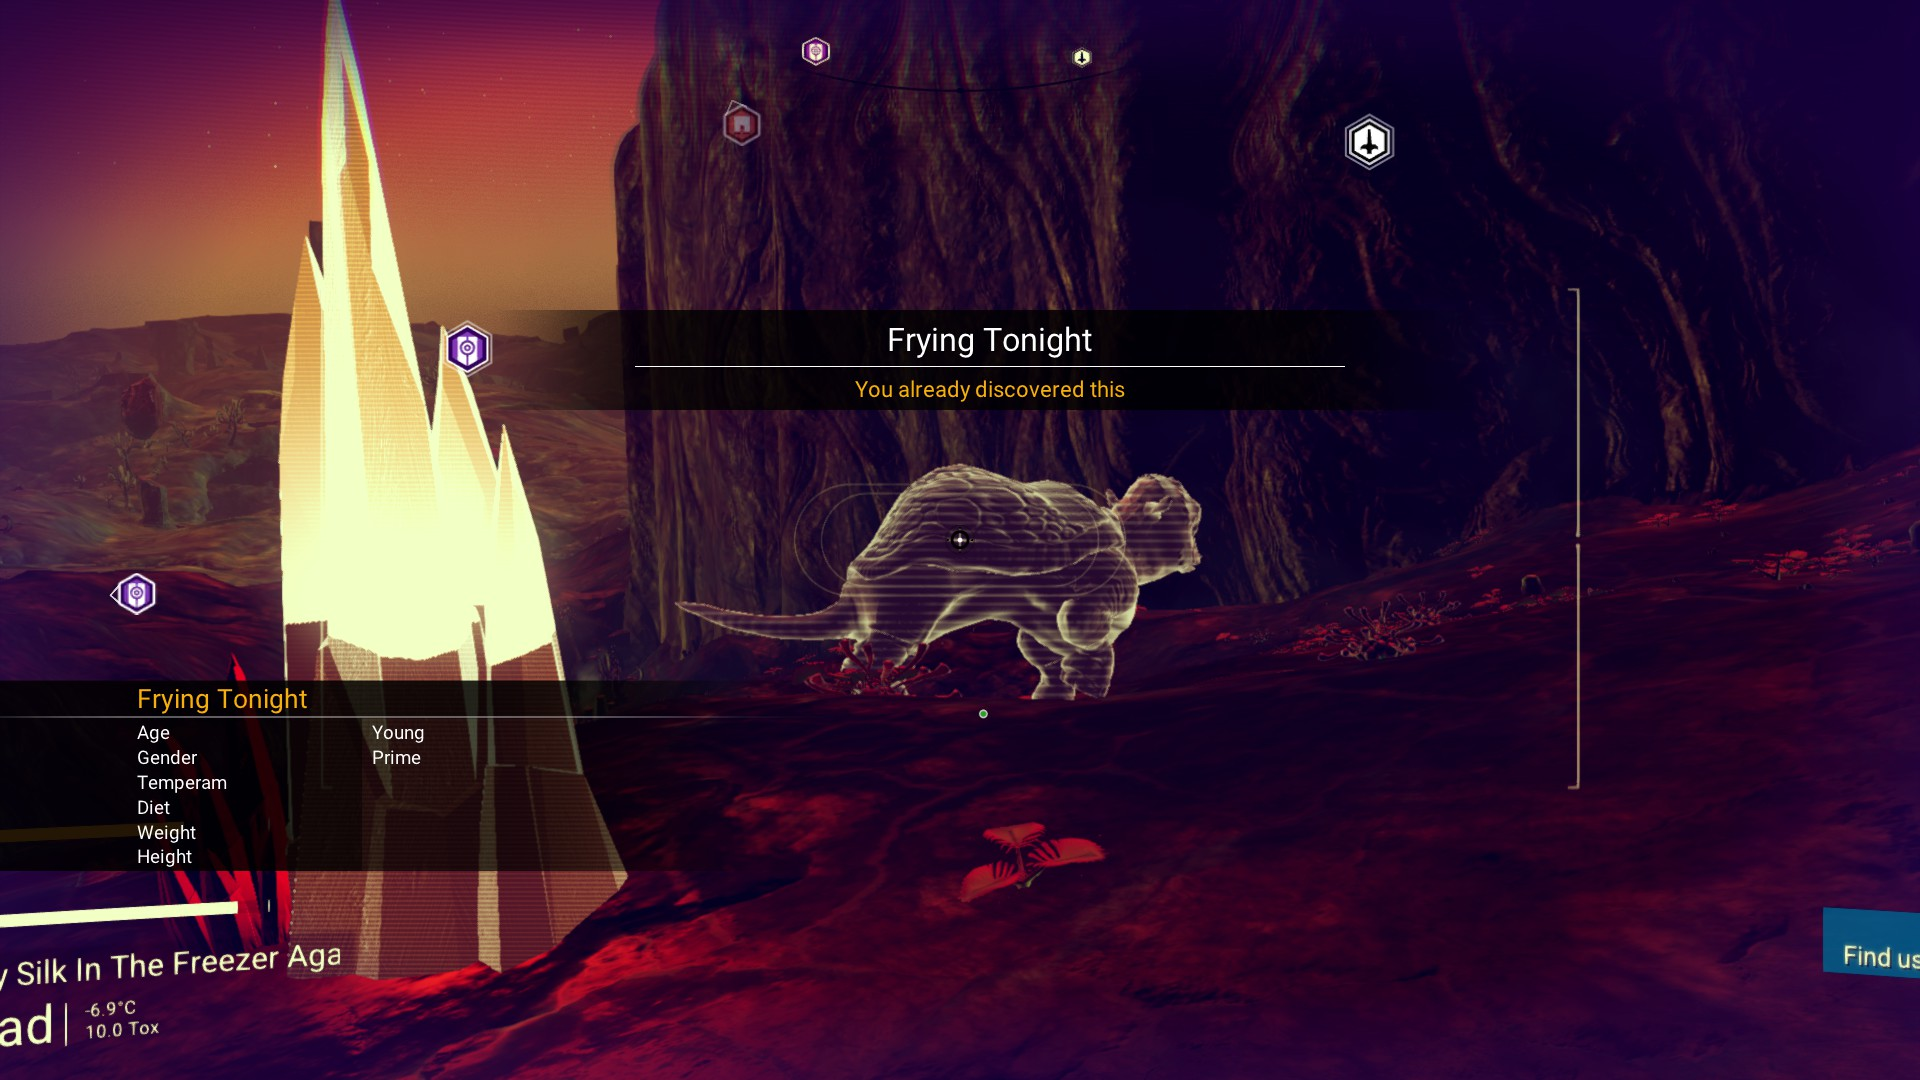 """An earlier version of No Man's Sky, mid scan. A quadrupedal animal is labelled """"Frying Tonight"""""""